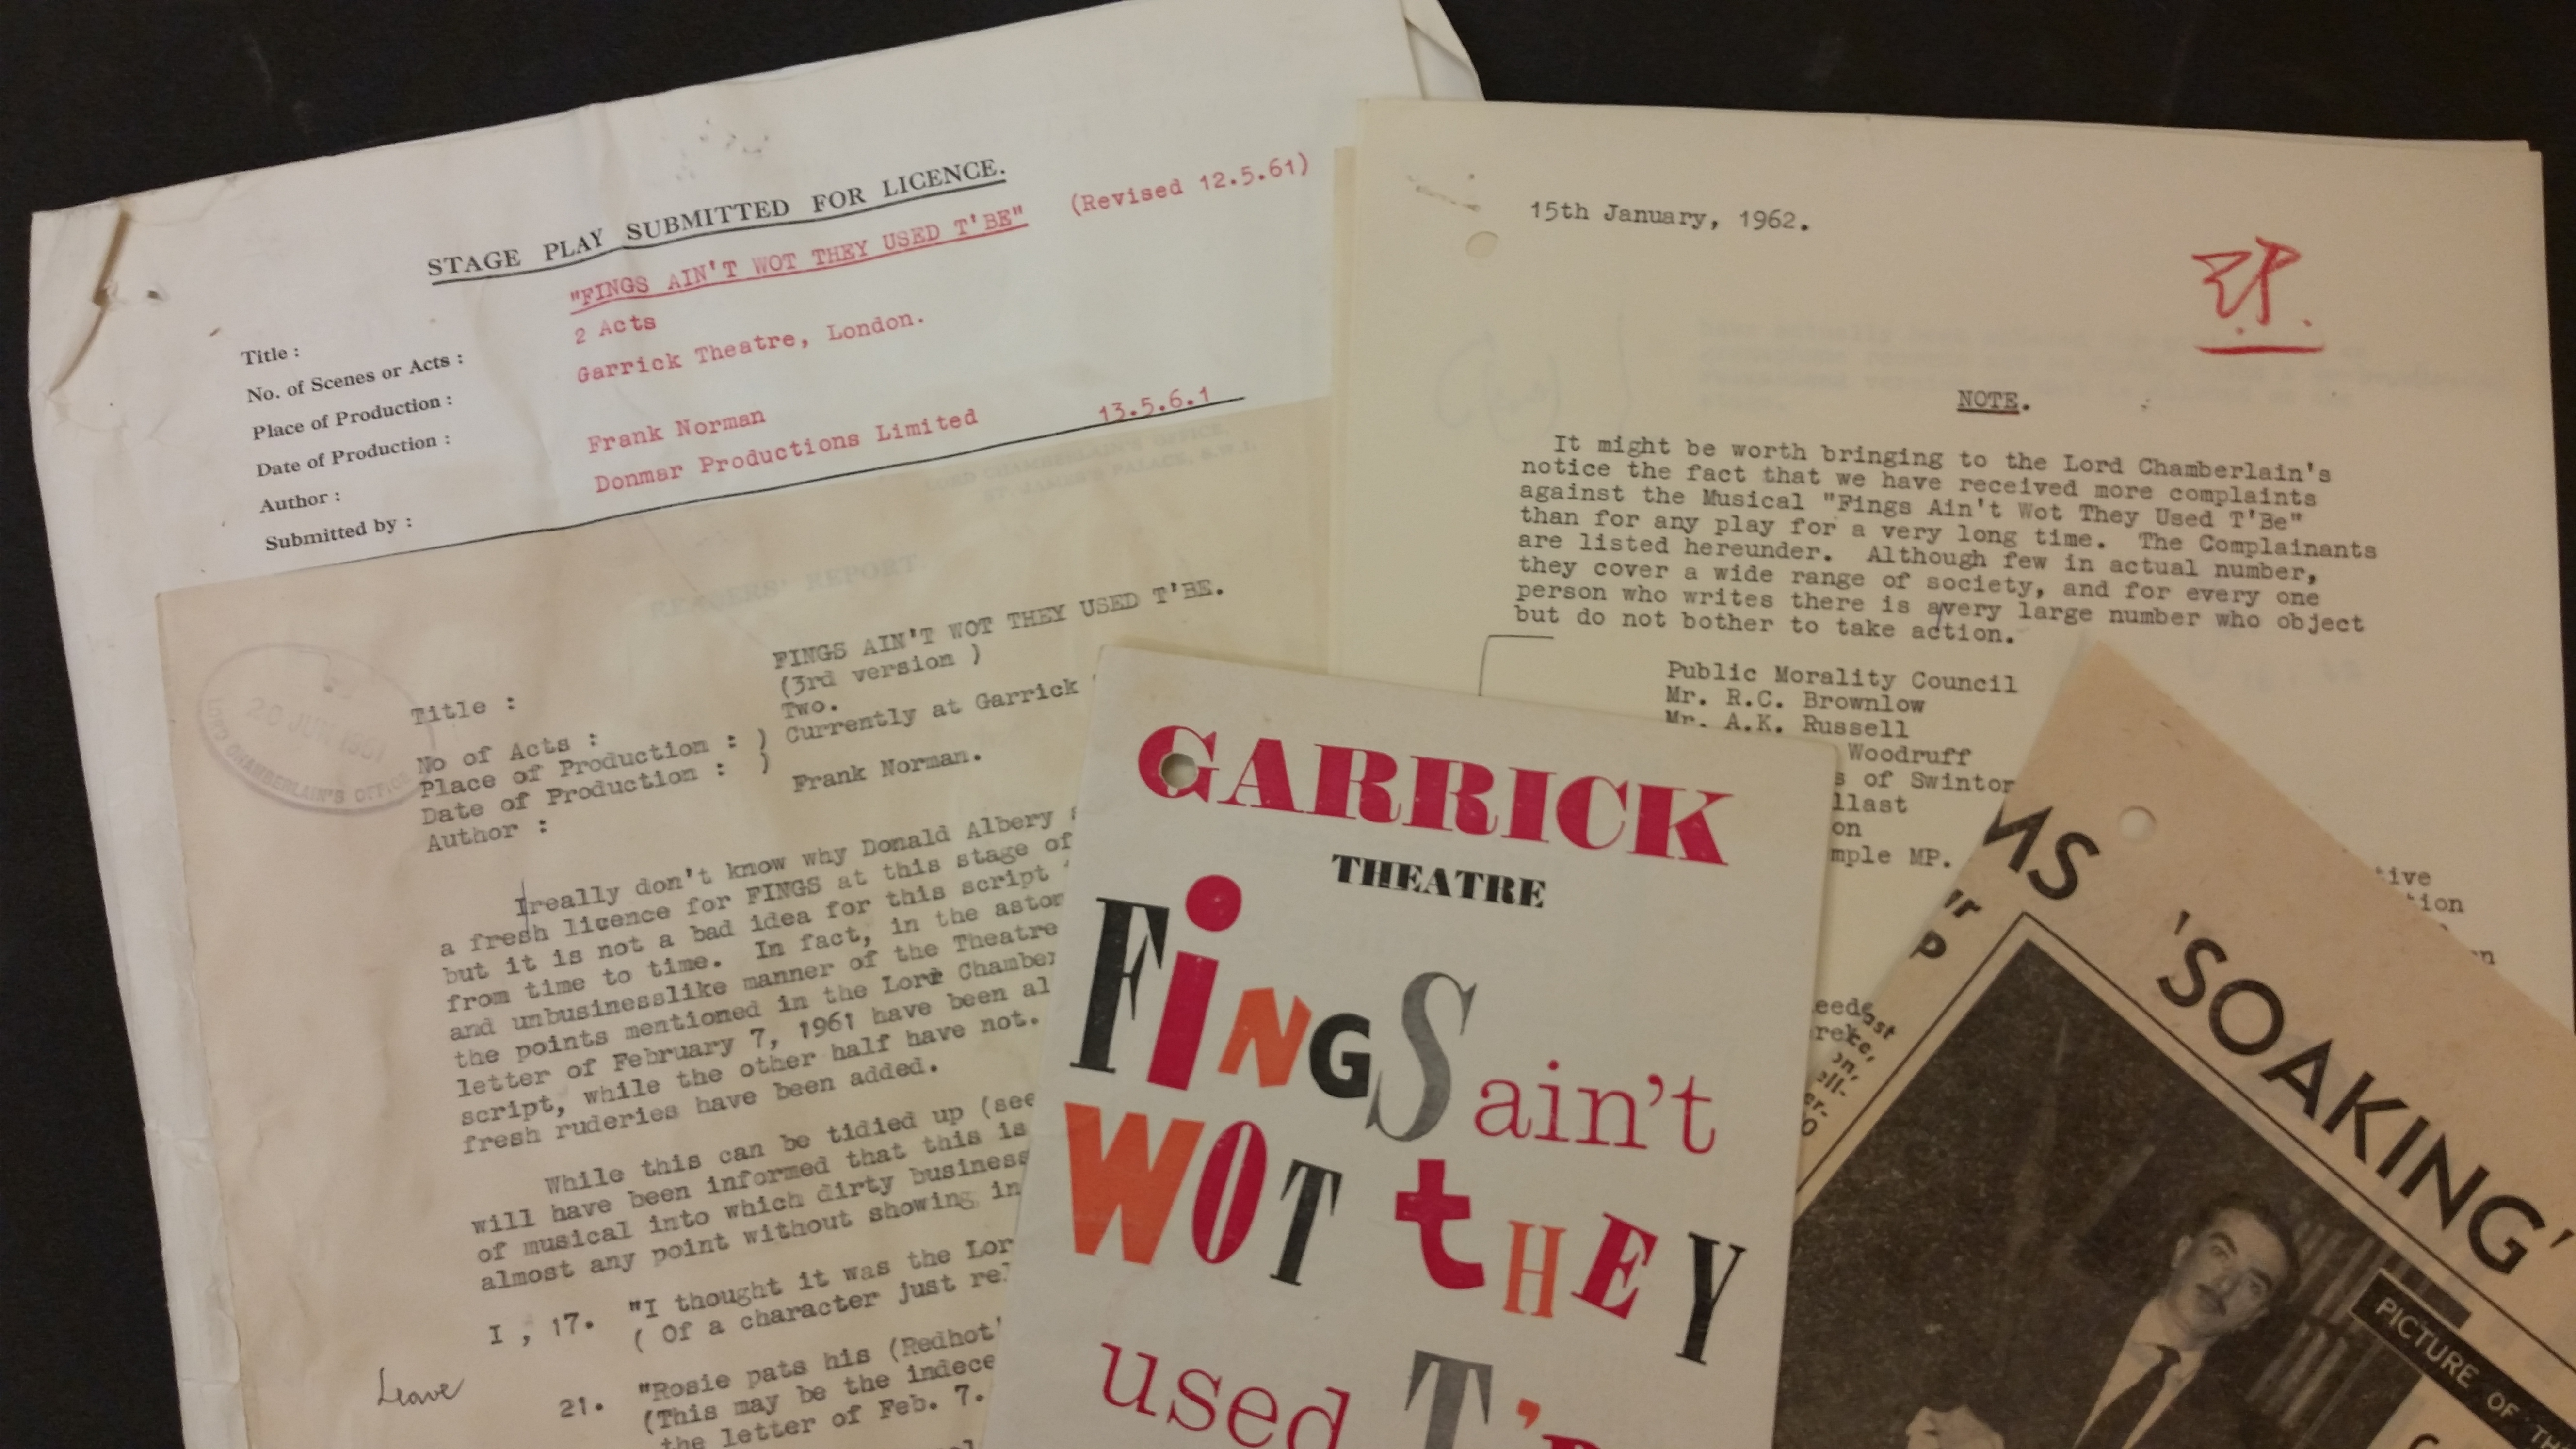 Typewritten and printed documents relating to the play, Fings Ain't Wot They Used T'be